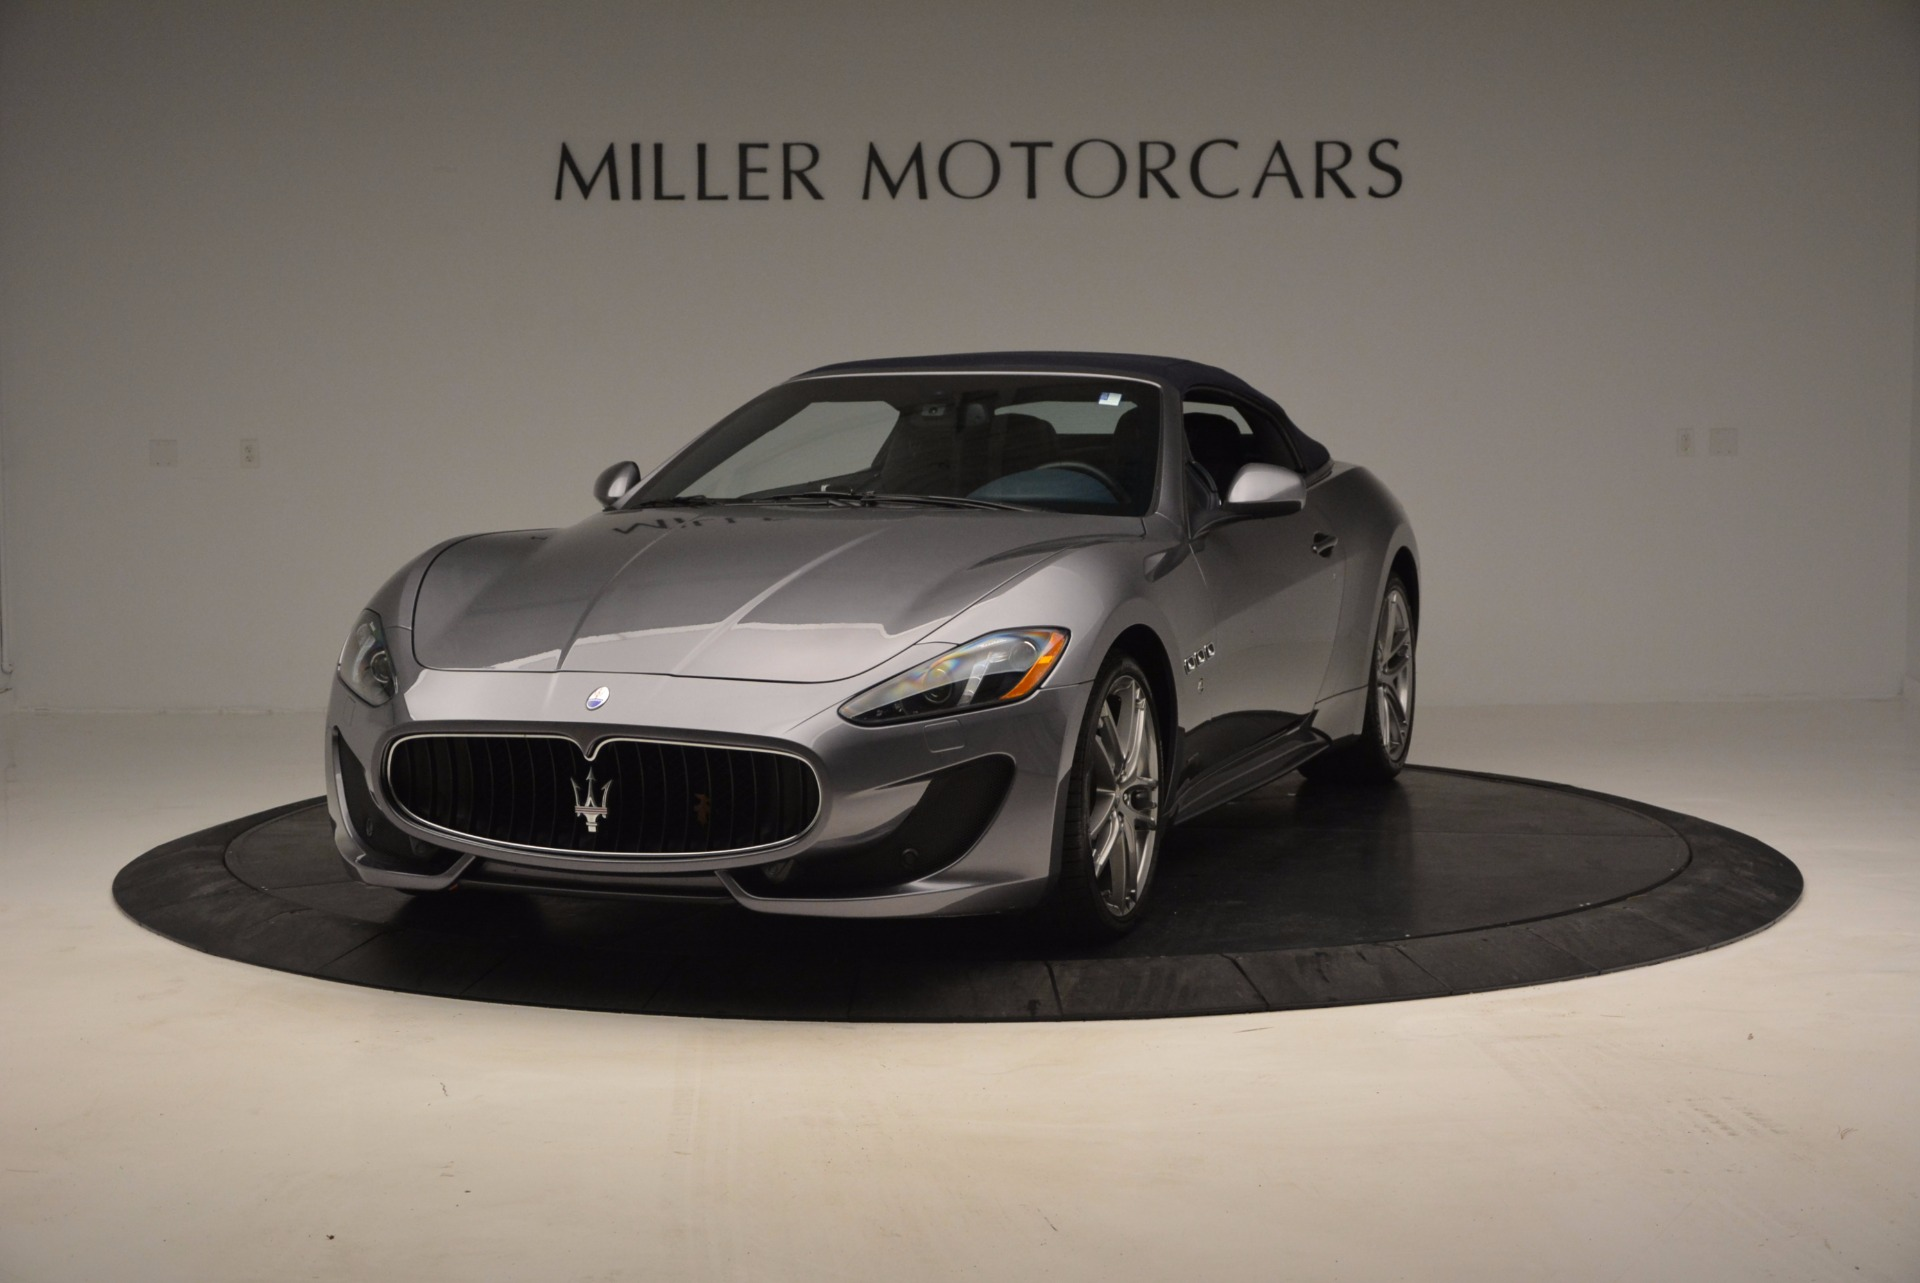 New 2017 Maserati GranTurismo Sport For Sale In Greenwich, CT 598_p11